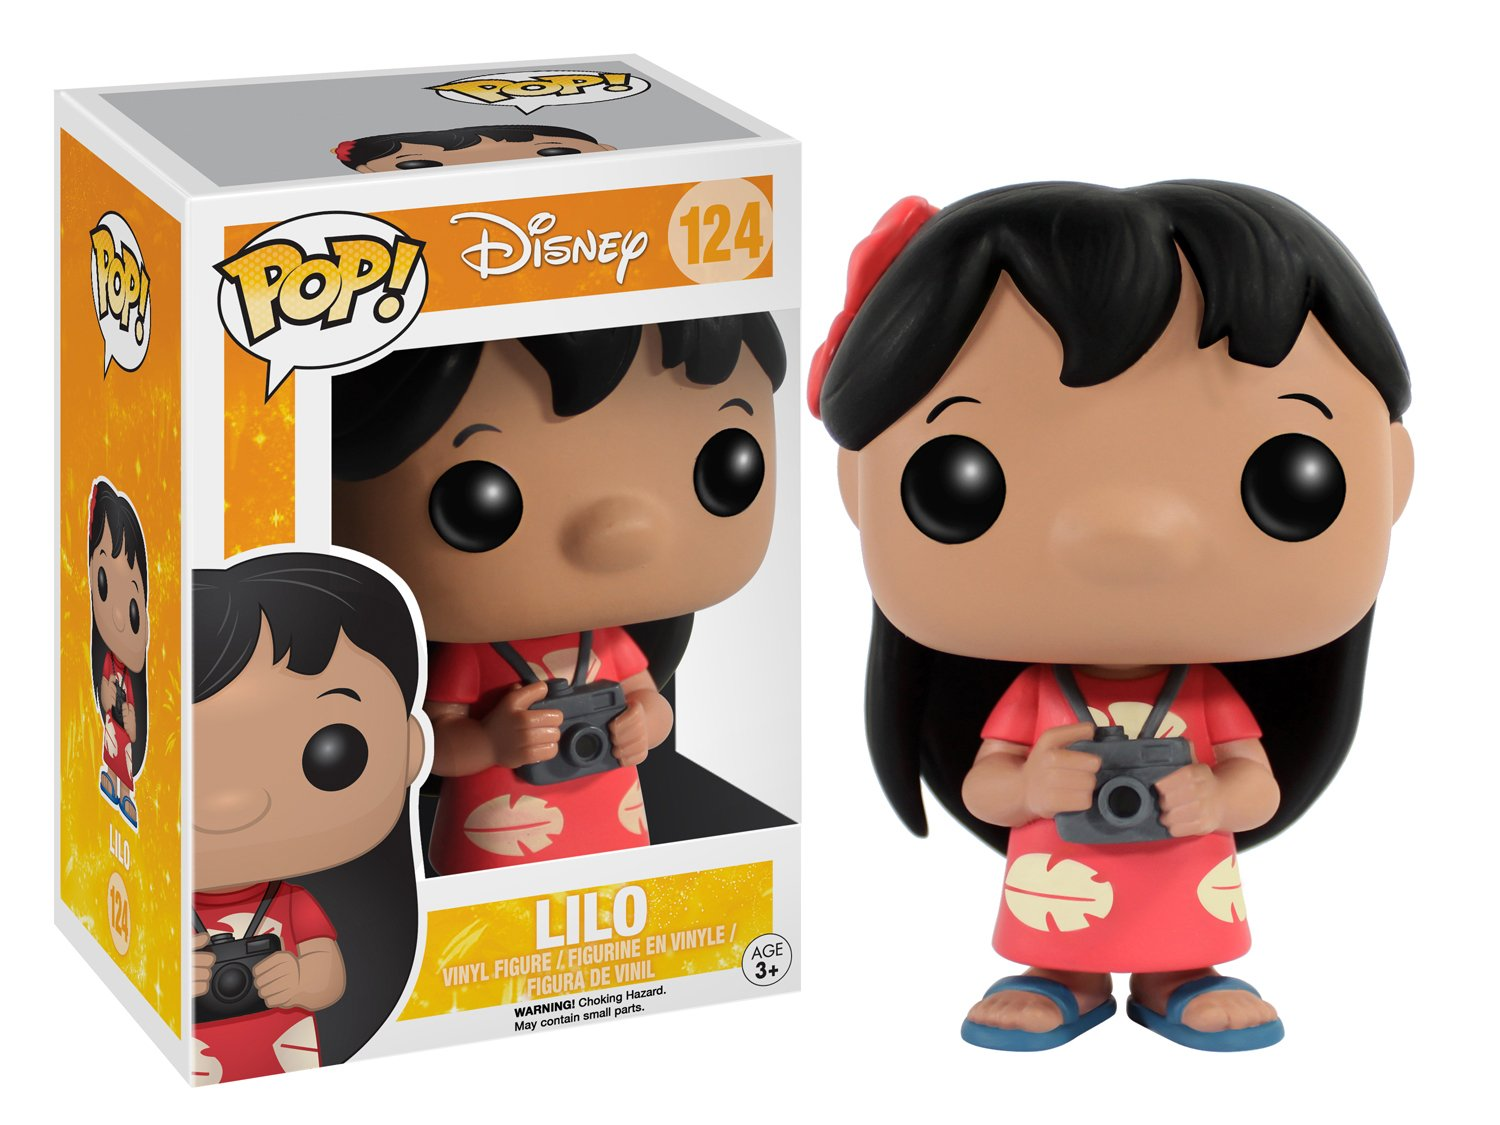 Image result for lilo pop figure